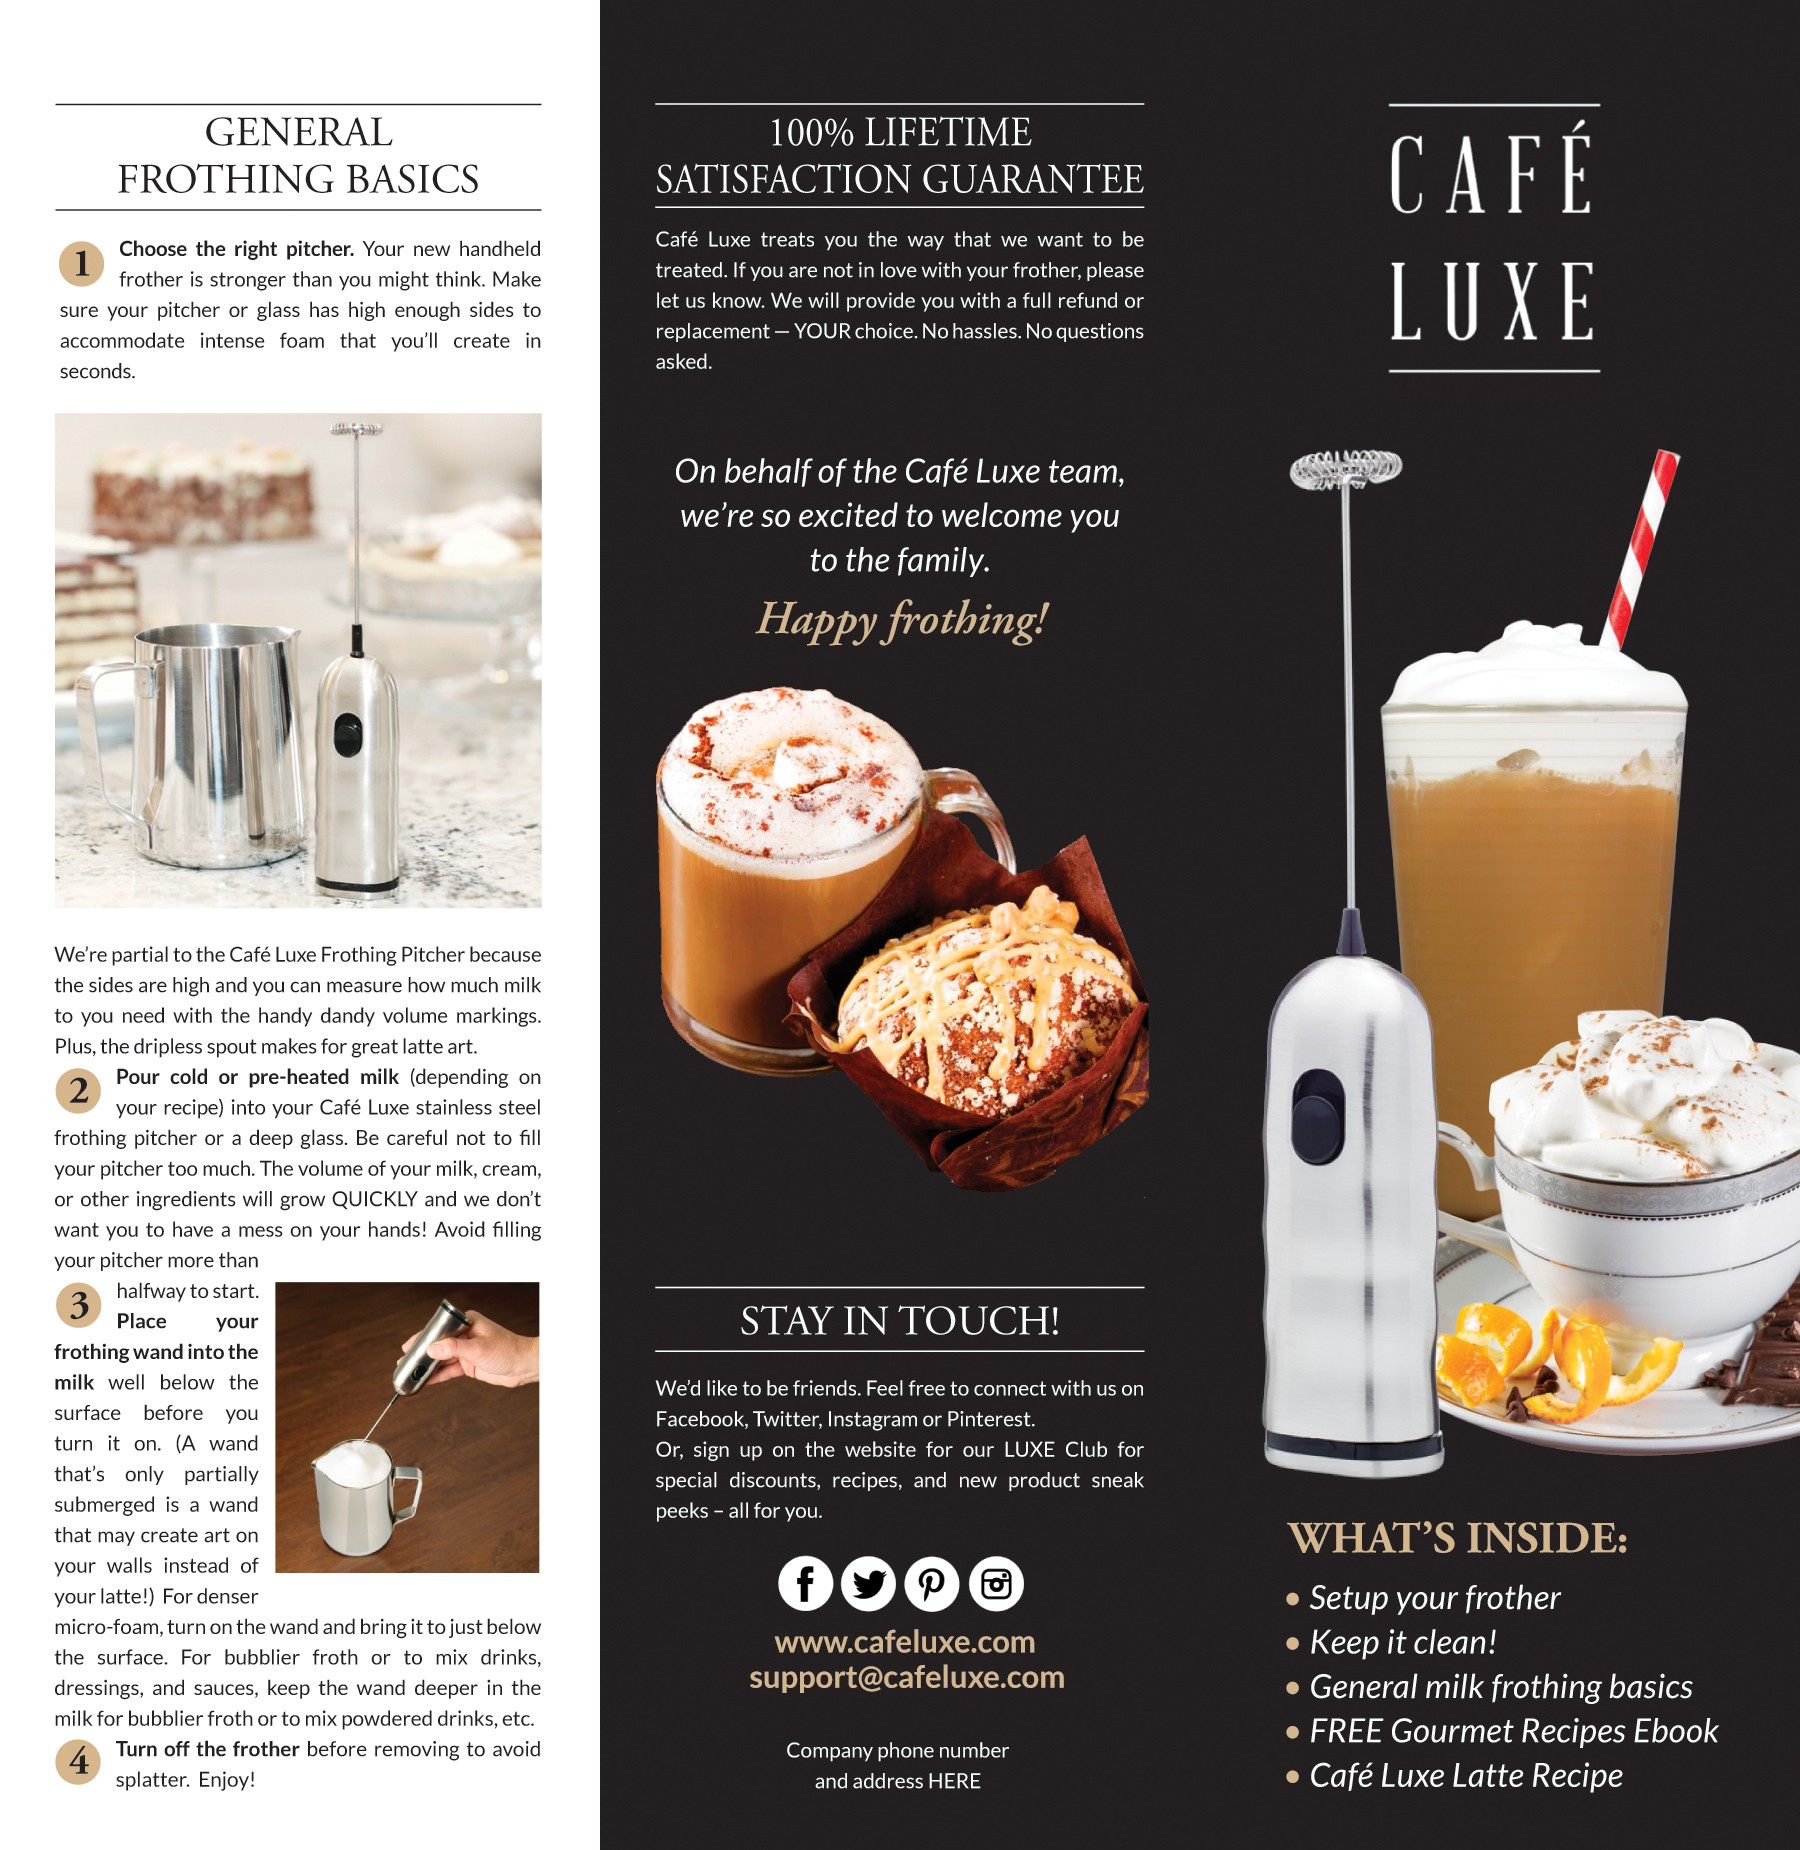 Design an effective product insert for Cafe Luxe